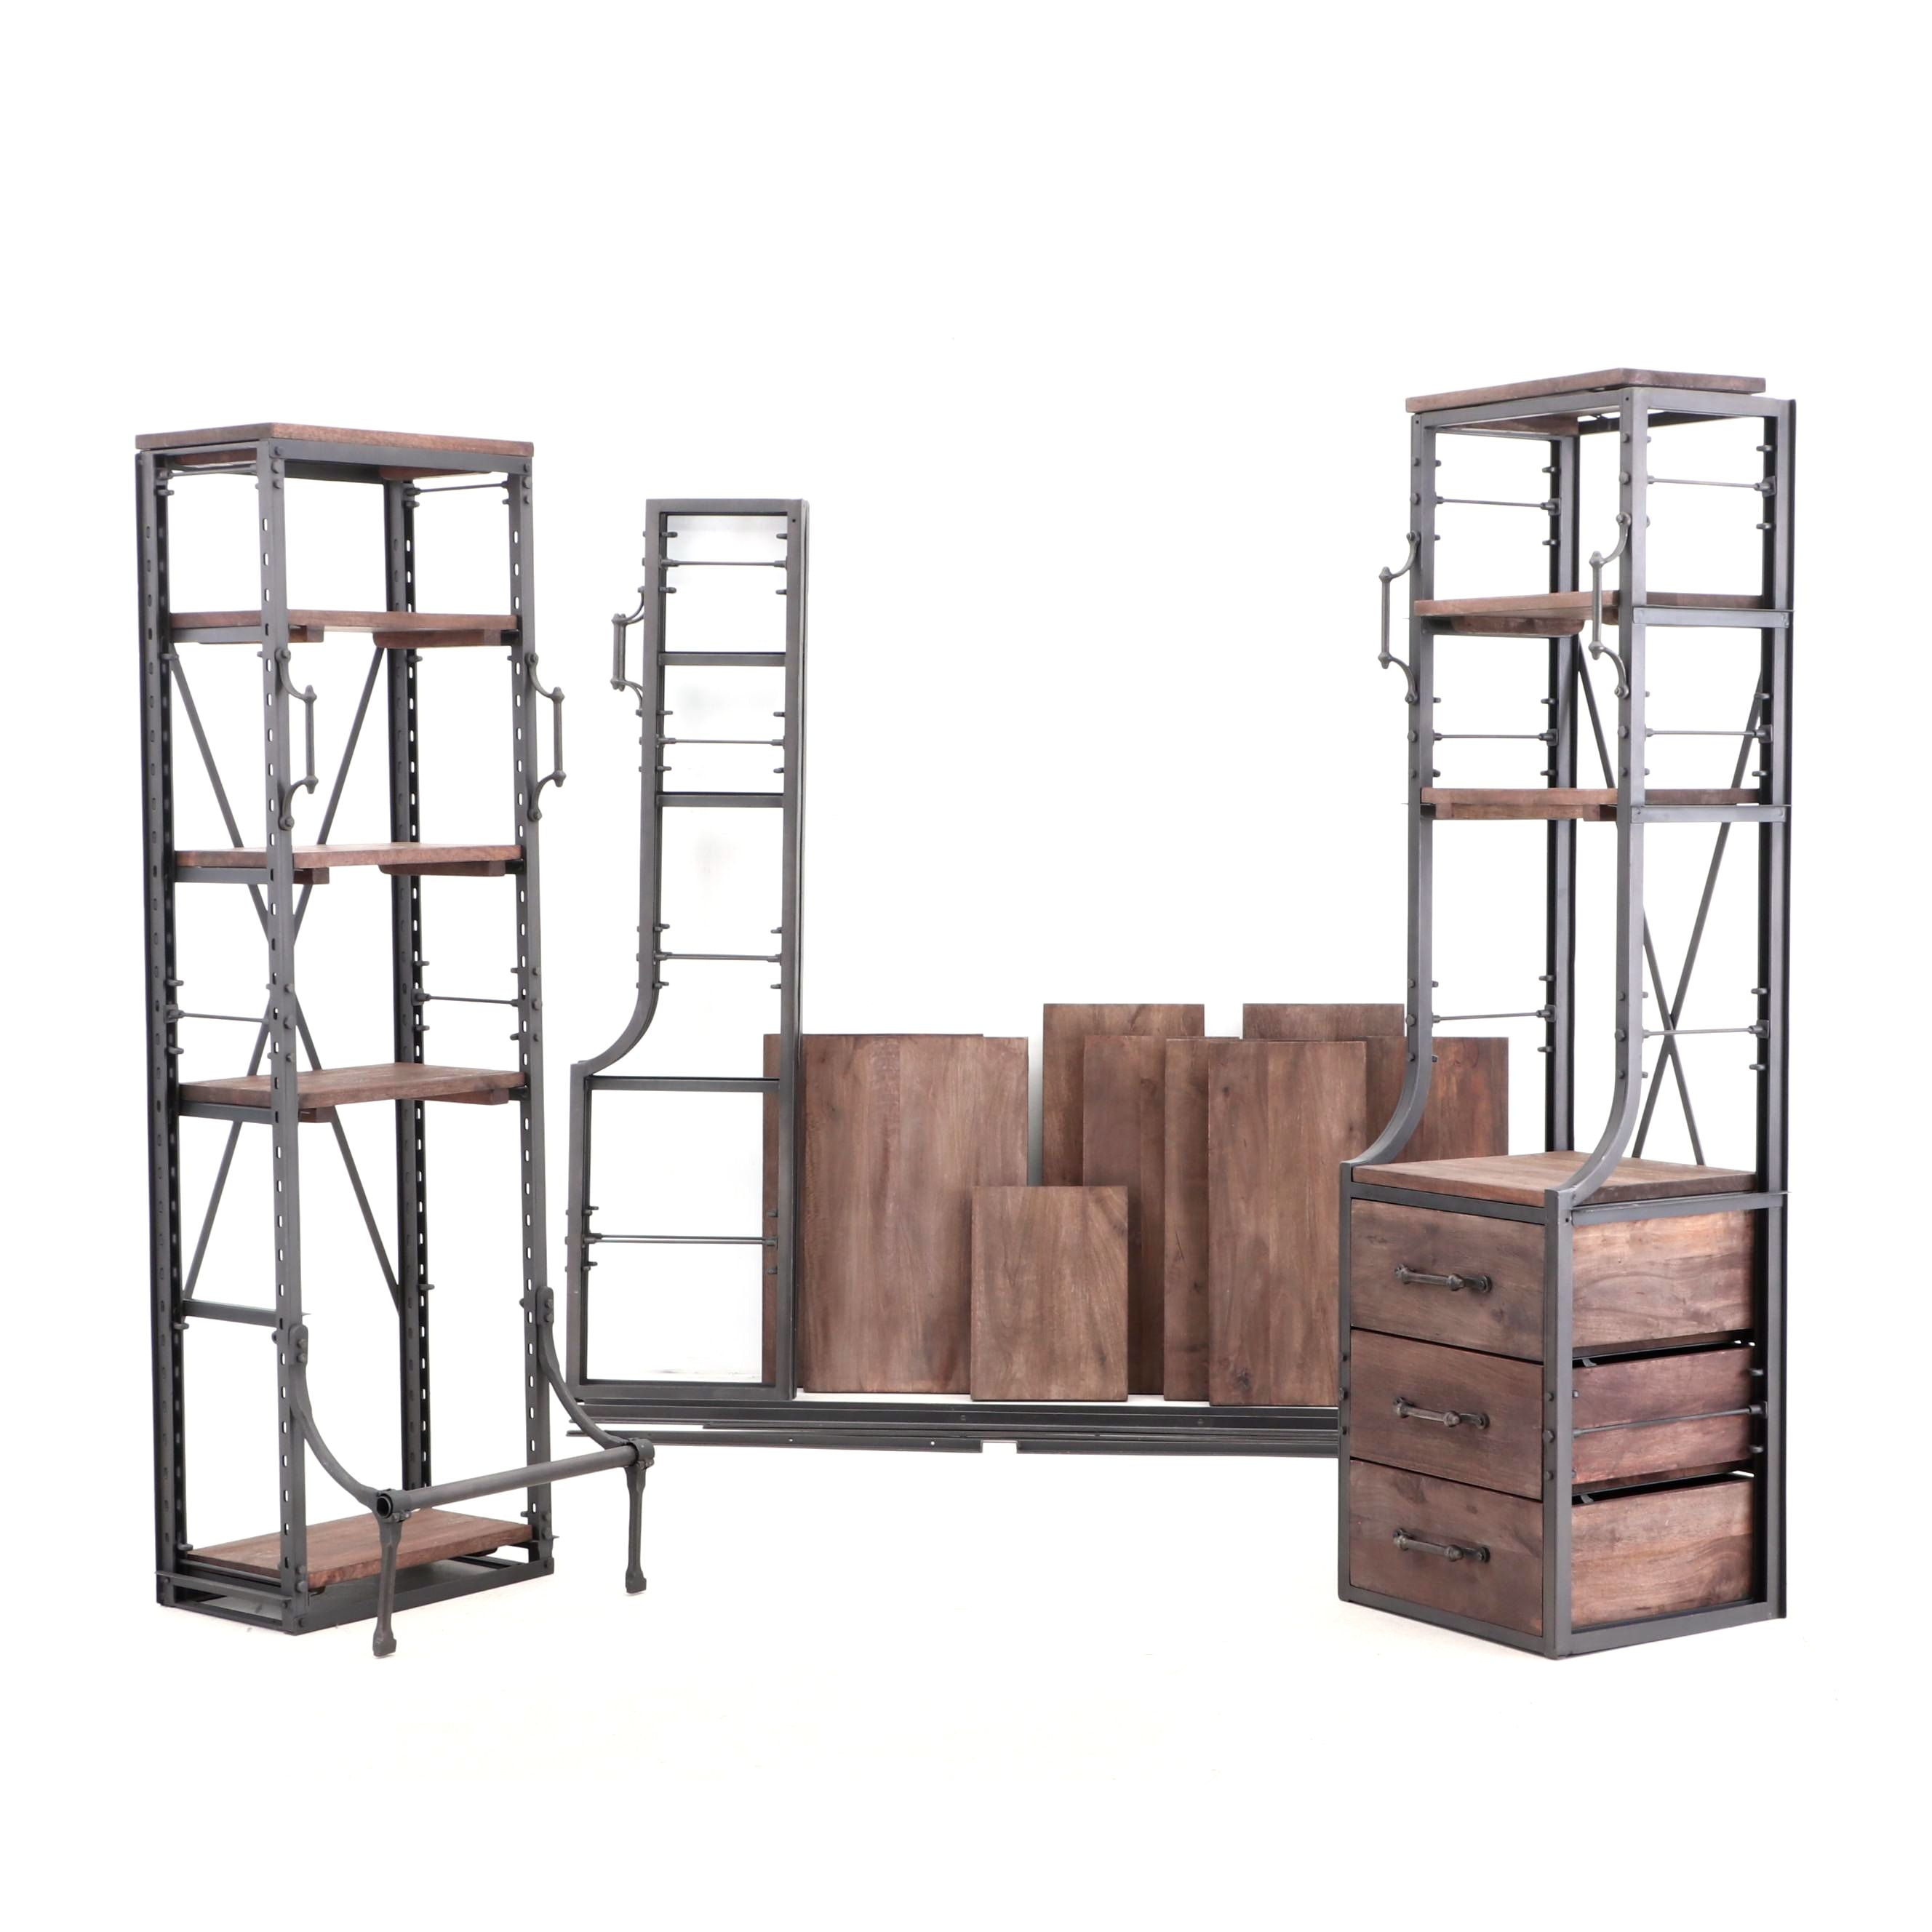 Restoration Hardware Teen Industrial Style Metal Shelves, Contemporary